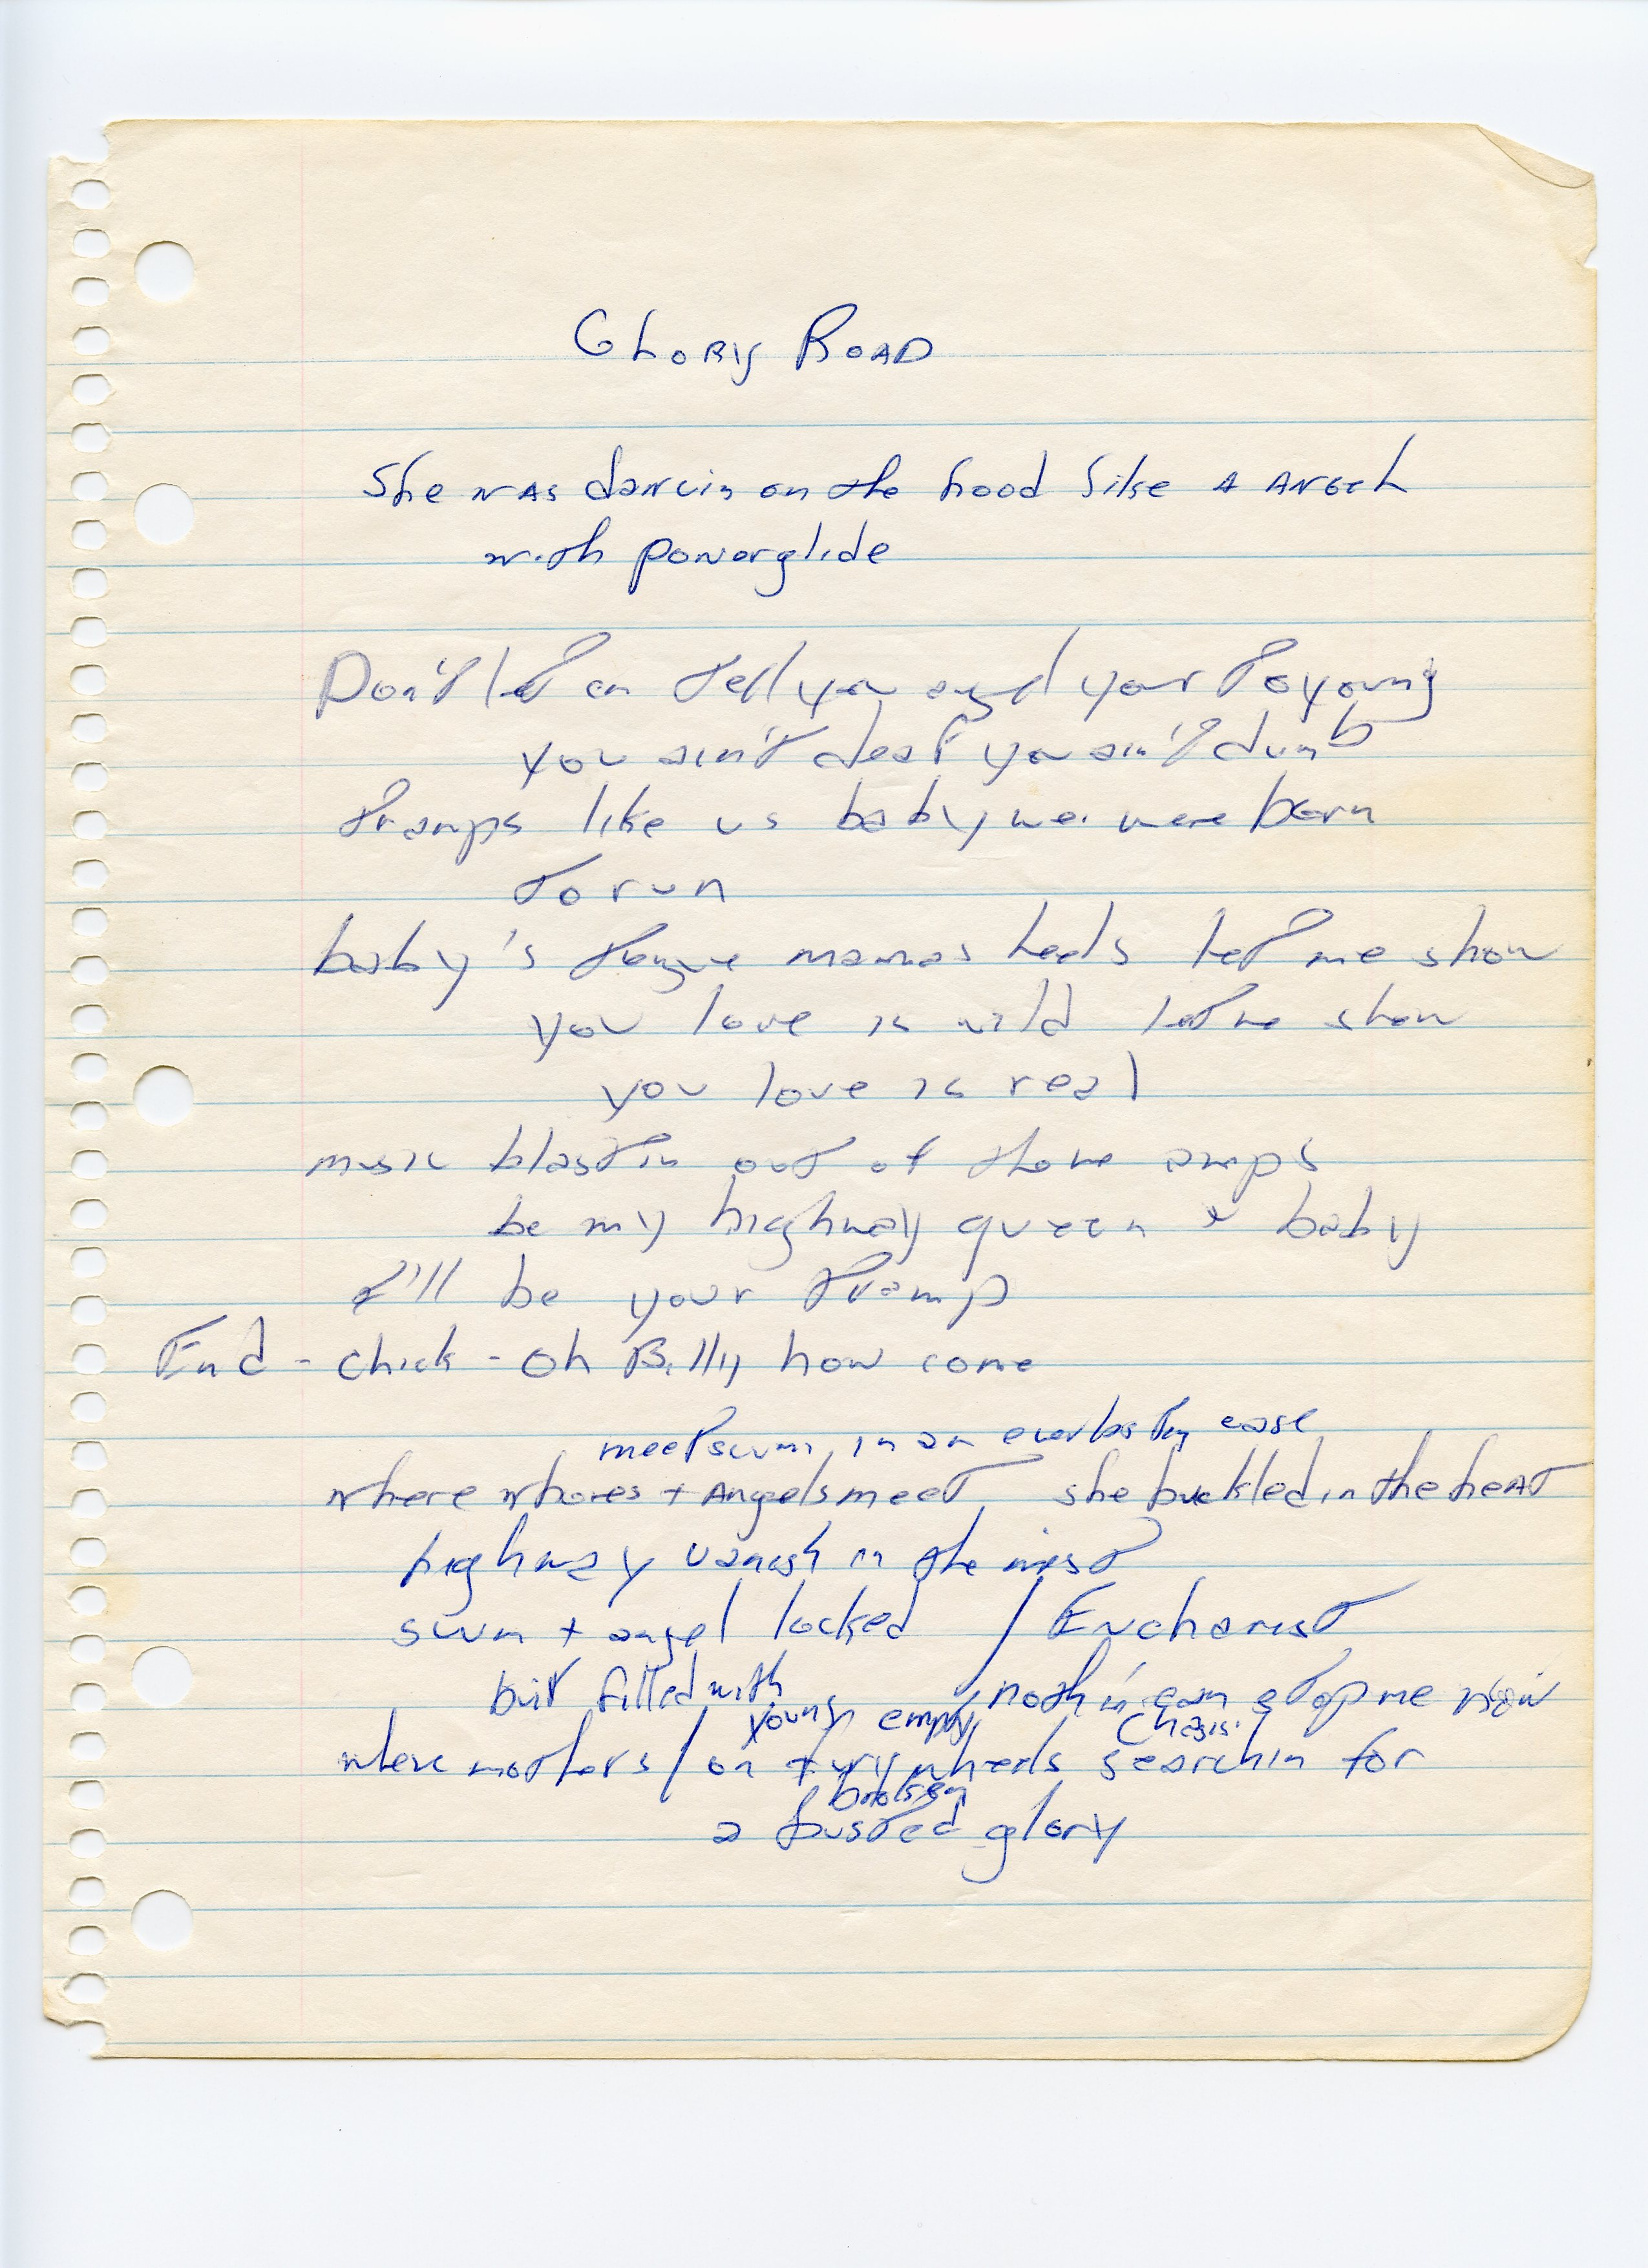 Lyrics to the song  Glory Road,  which Crane says became  Born to Run  — the words  born to run  appear on the page.